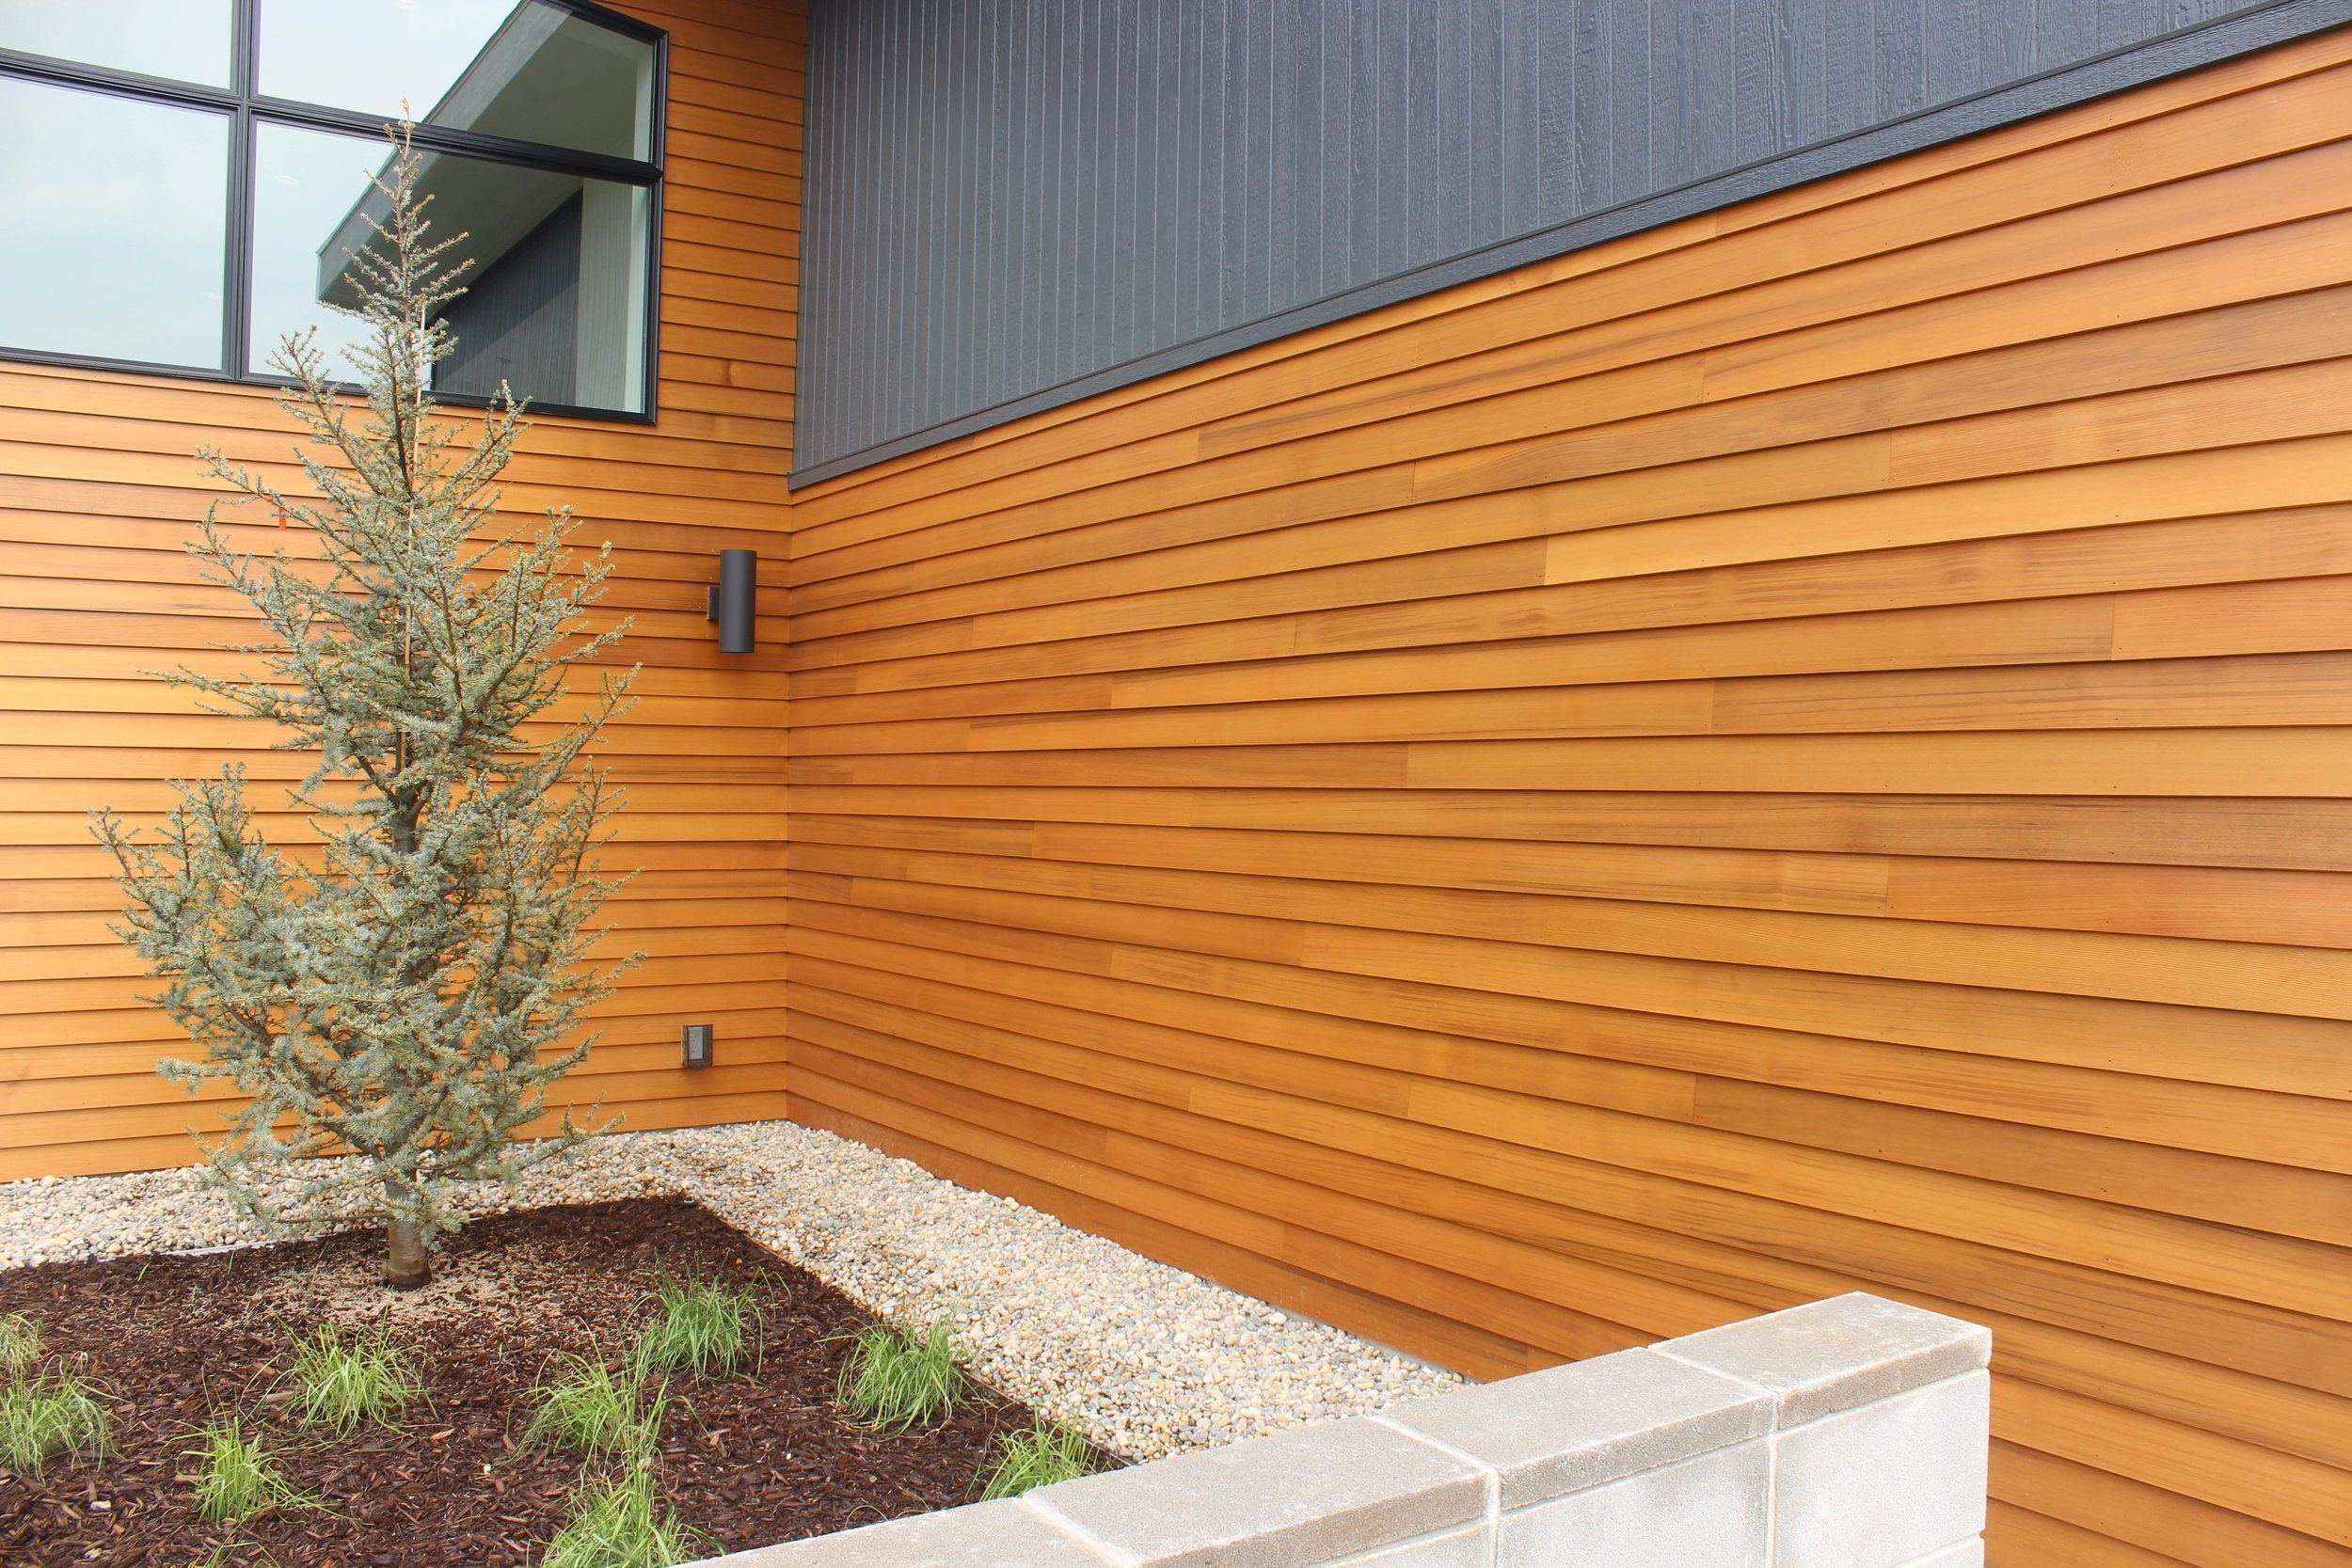 We Cannot Seem To Shake Our Love For Wood Shake Siding At Legacy We Know Our Clients Enjoy Aesthetics Almost As Much As We D Hausfassade Holzverkleidung Haus